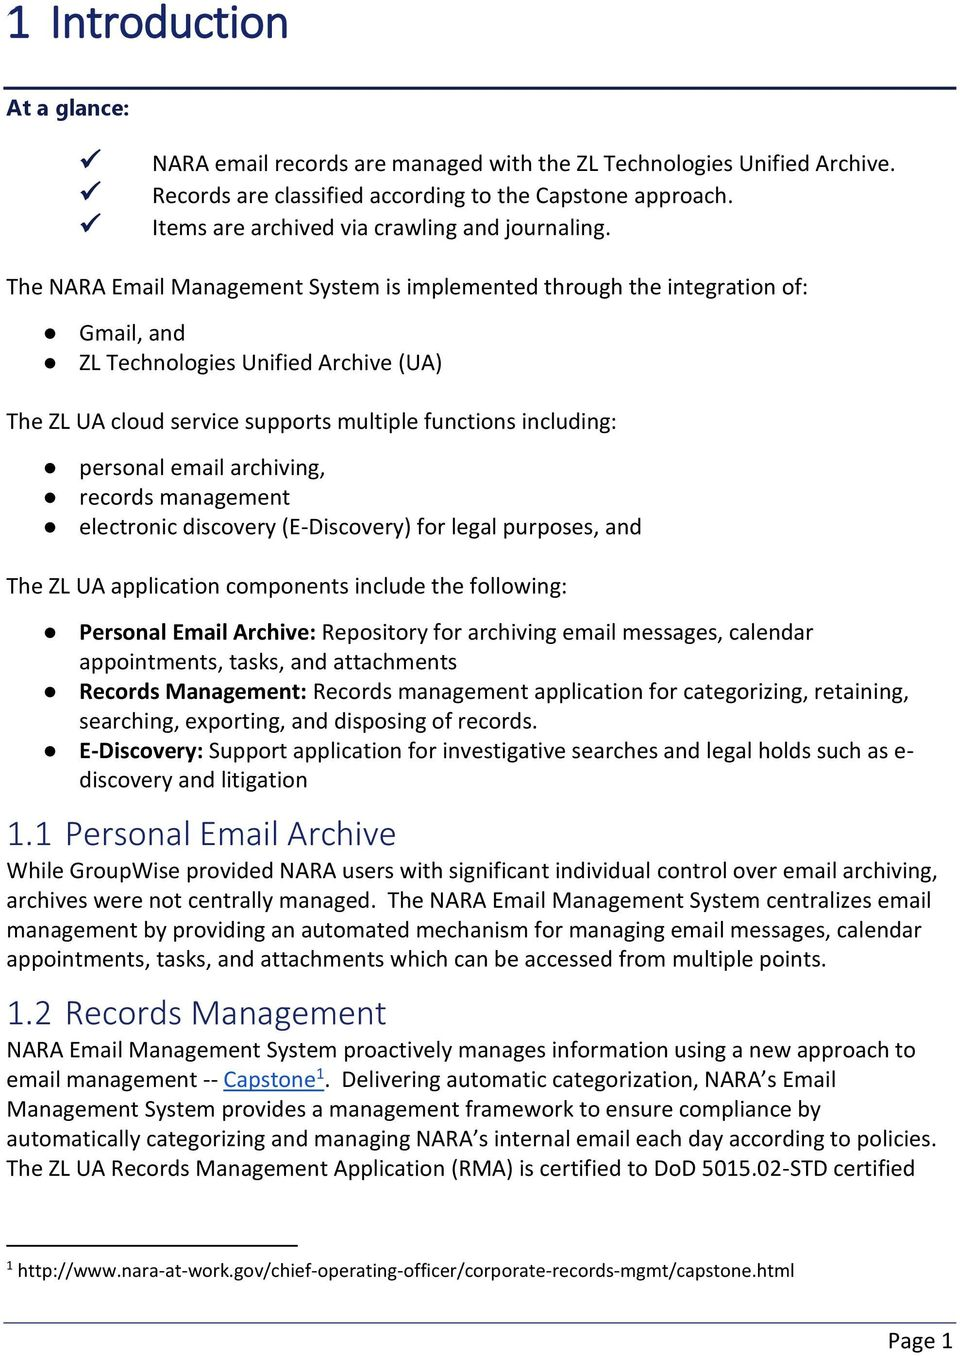 The NARA Email Management System is implemented through the integration of: Gmail, and ZL Technologies Unified Archive (UA) The ZL UA cloud service supports multiple functions including: personal